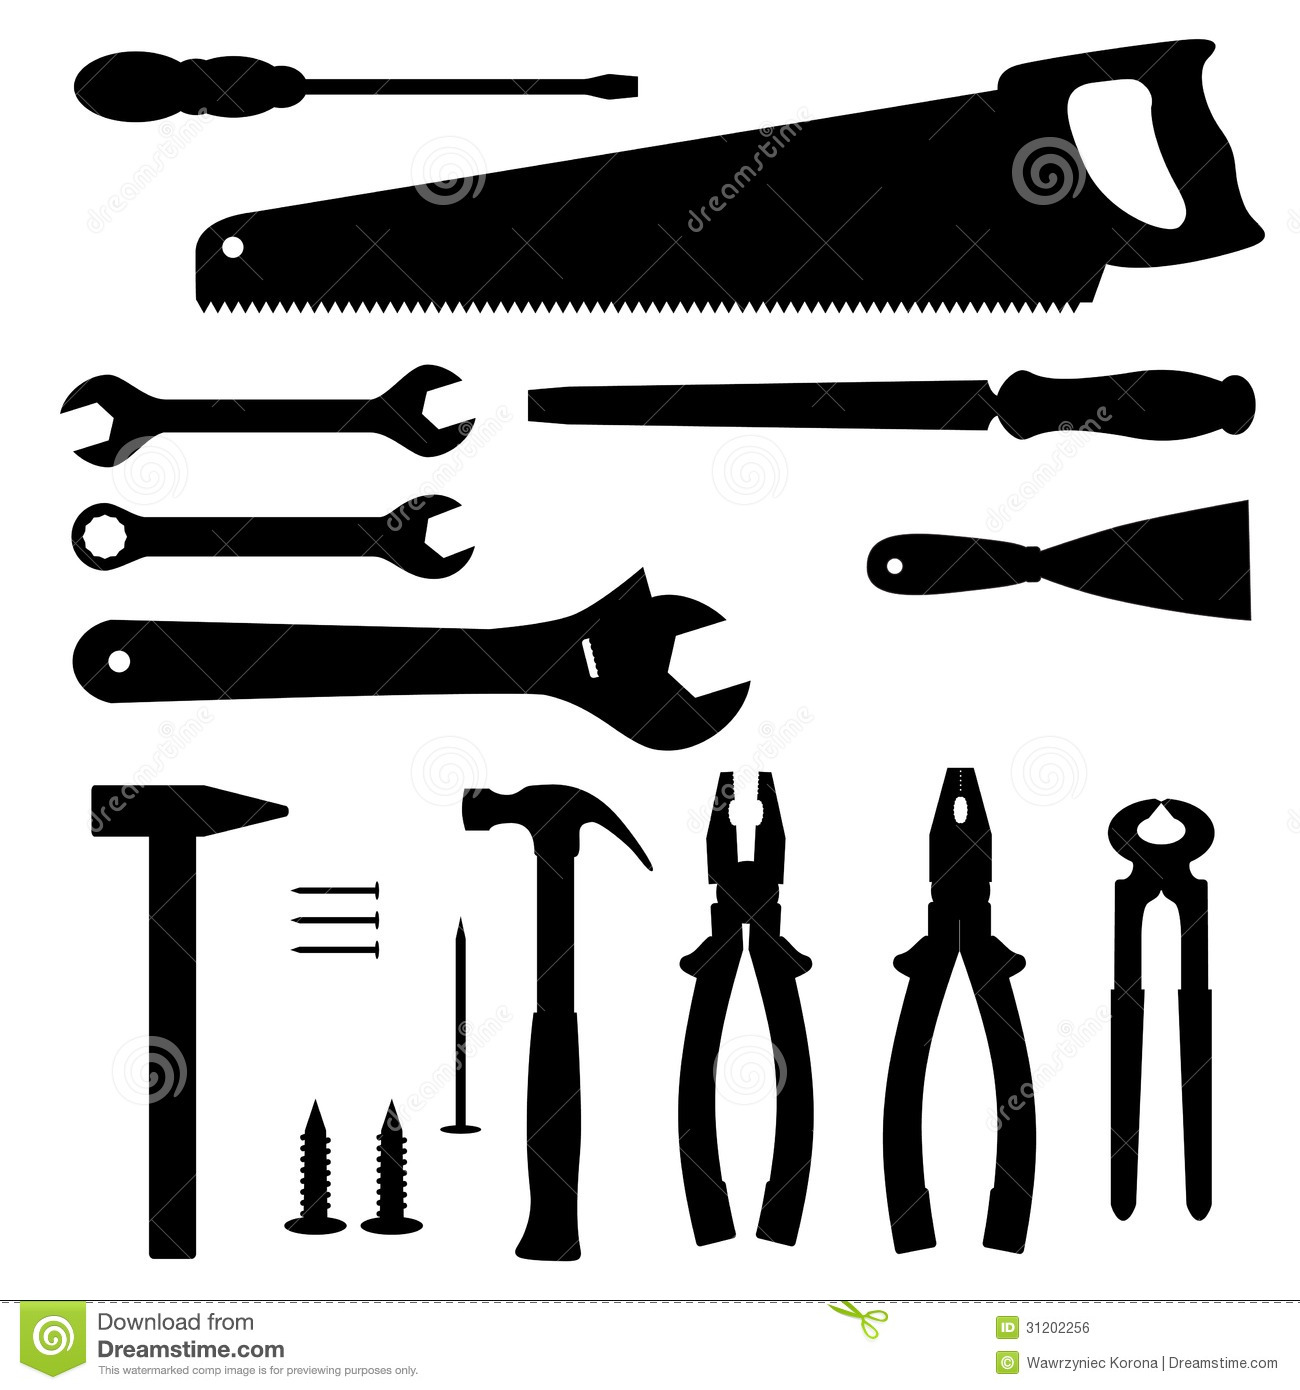 Silhouettes Of Tools Royalty Free Stock Image - Image ...